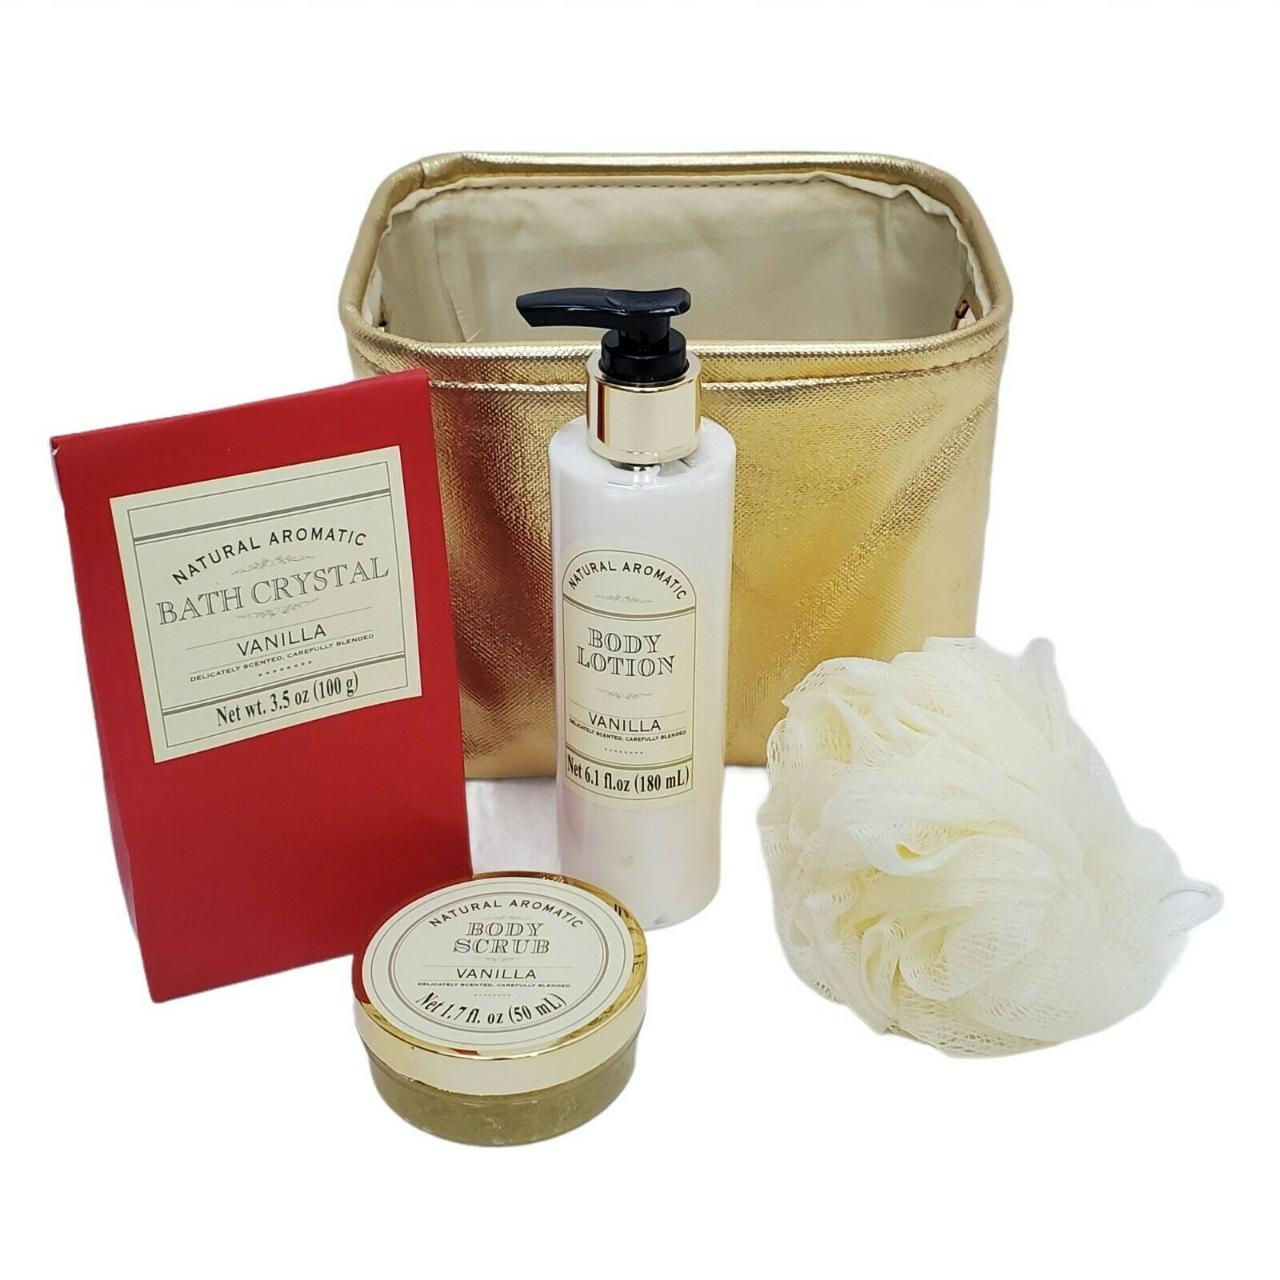 Product Image 1 - Natural Aromatic Vanilla scented bath